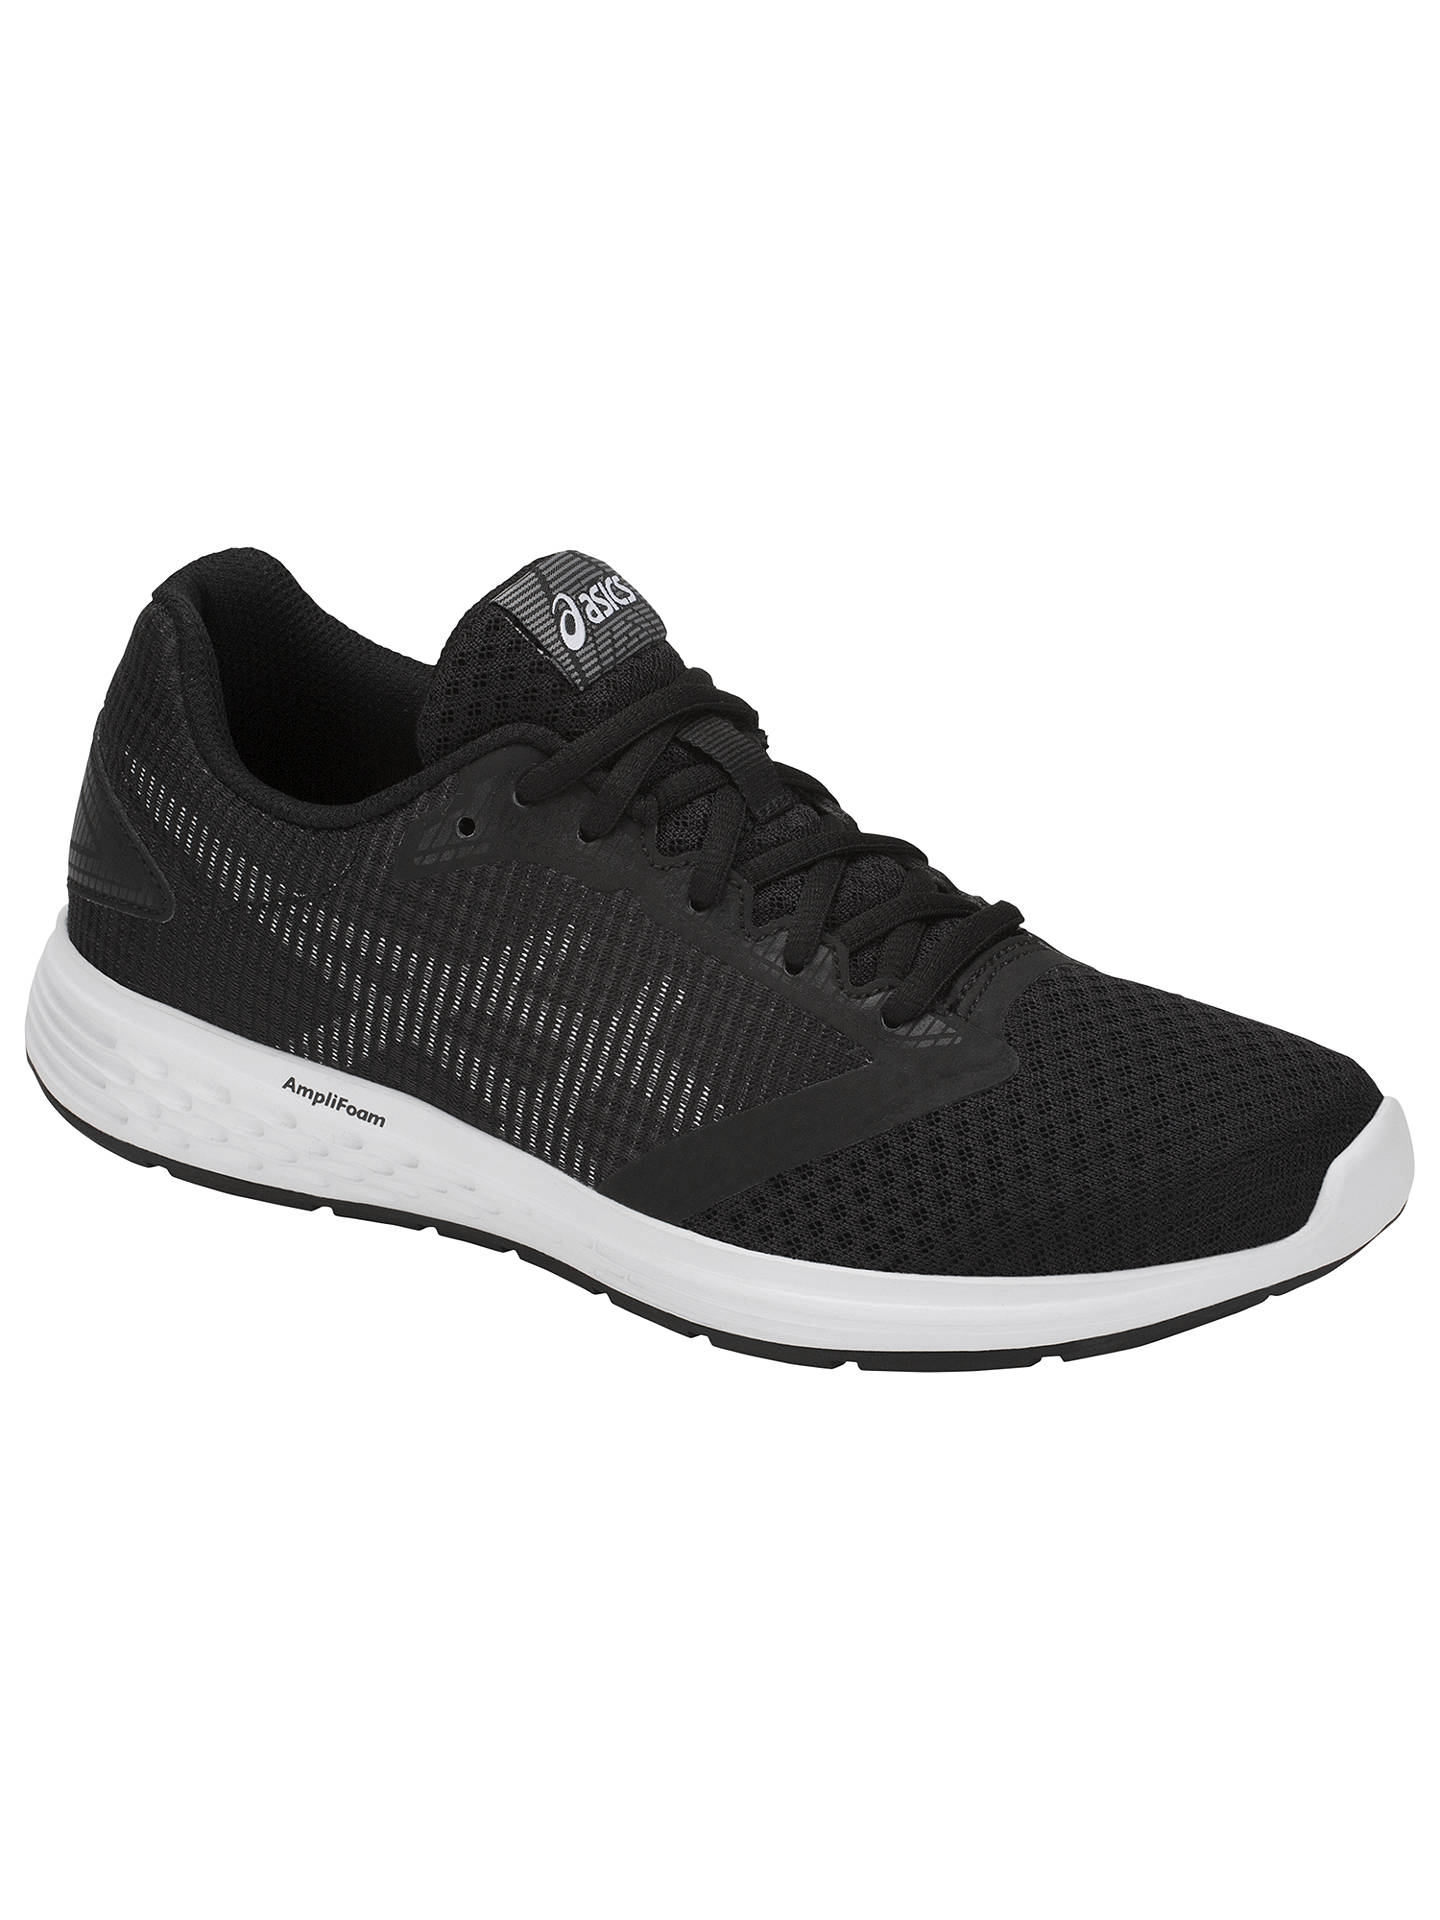 Buy ASICS PATRIOT 10 Women's Running Shoes, Black, 4 Online at johnlewis.com